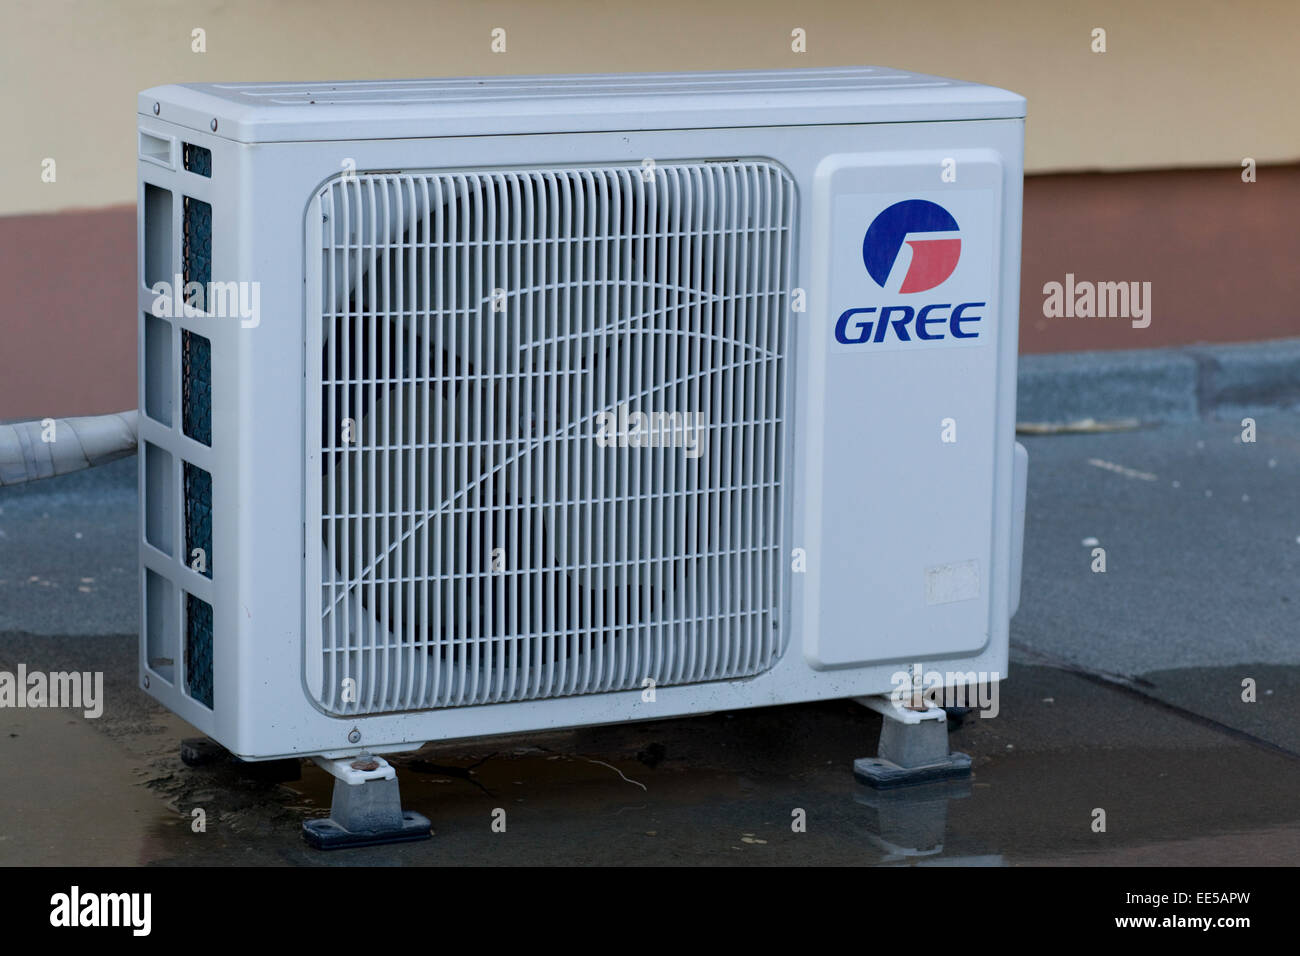 Gree Residential Air conditioner Stock Photo